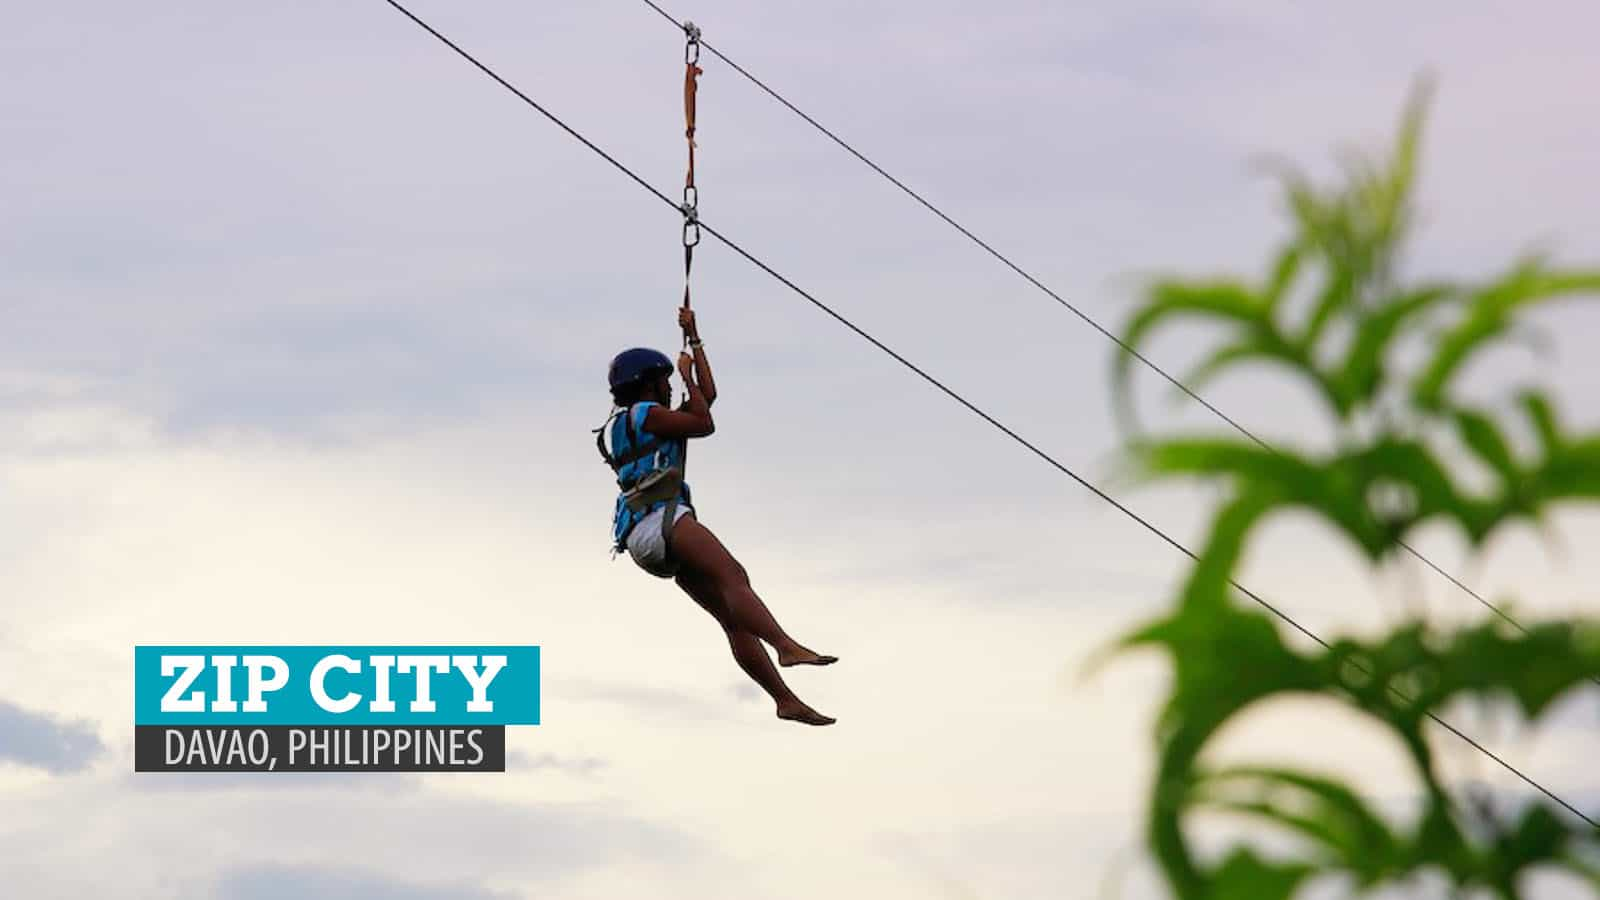 ZIP CITY: First Time on the Line in Davao City, Philippines